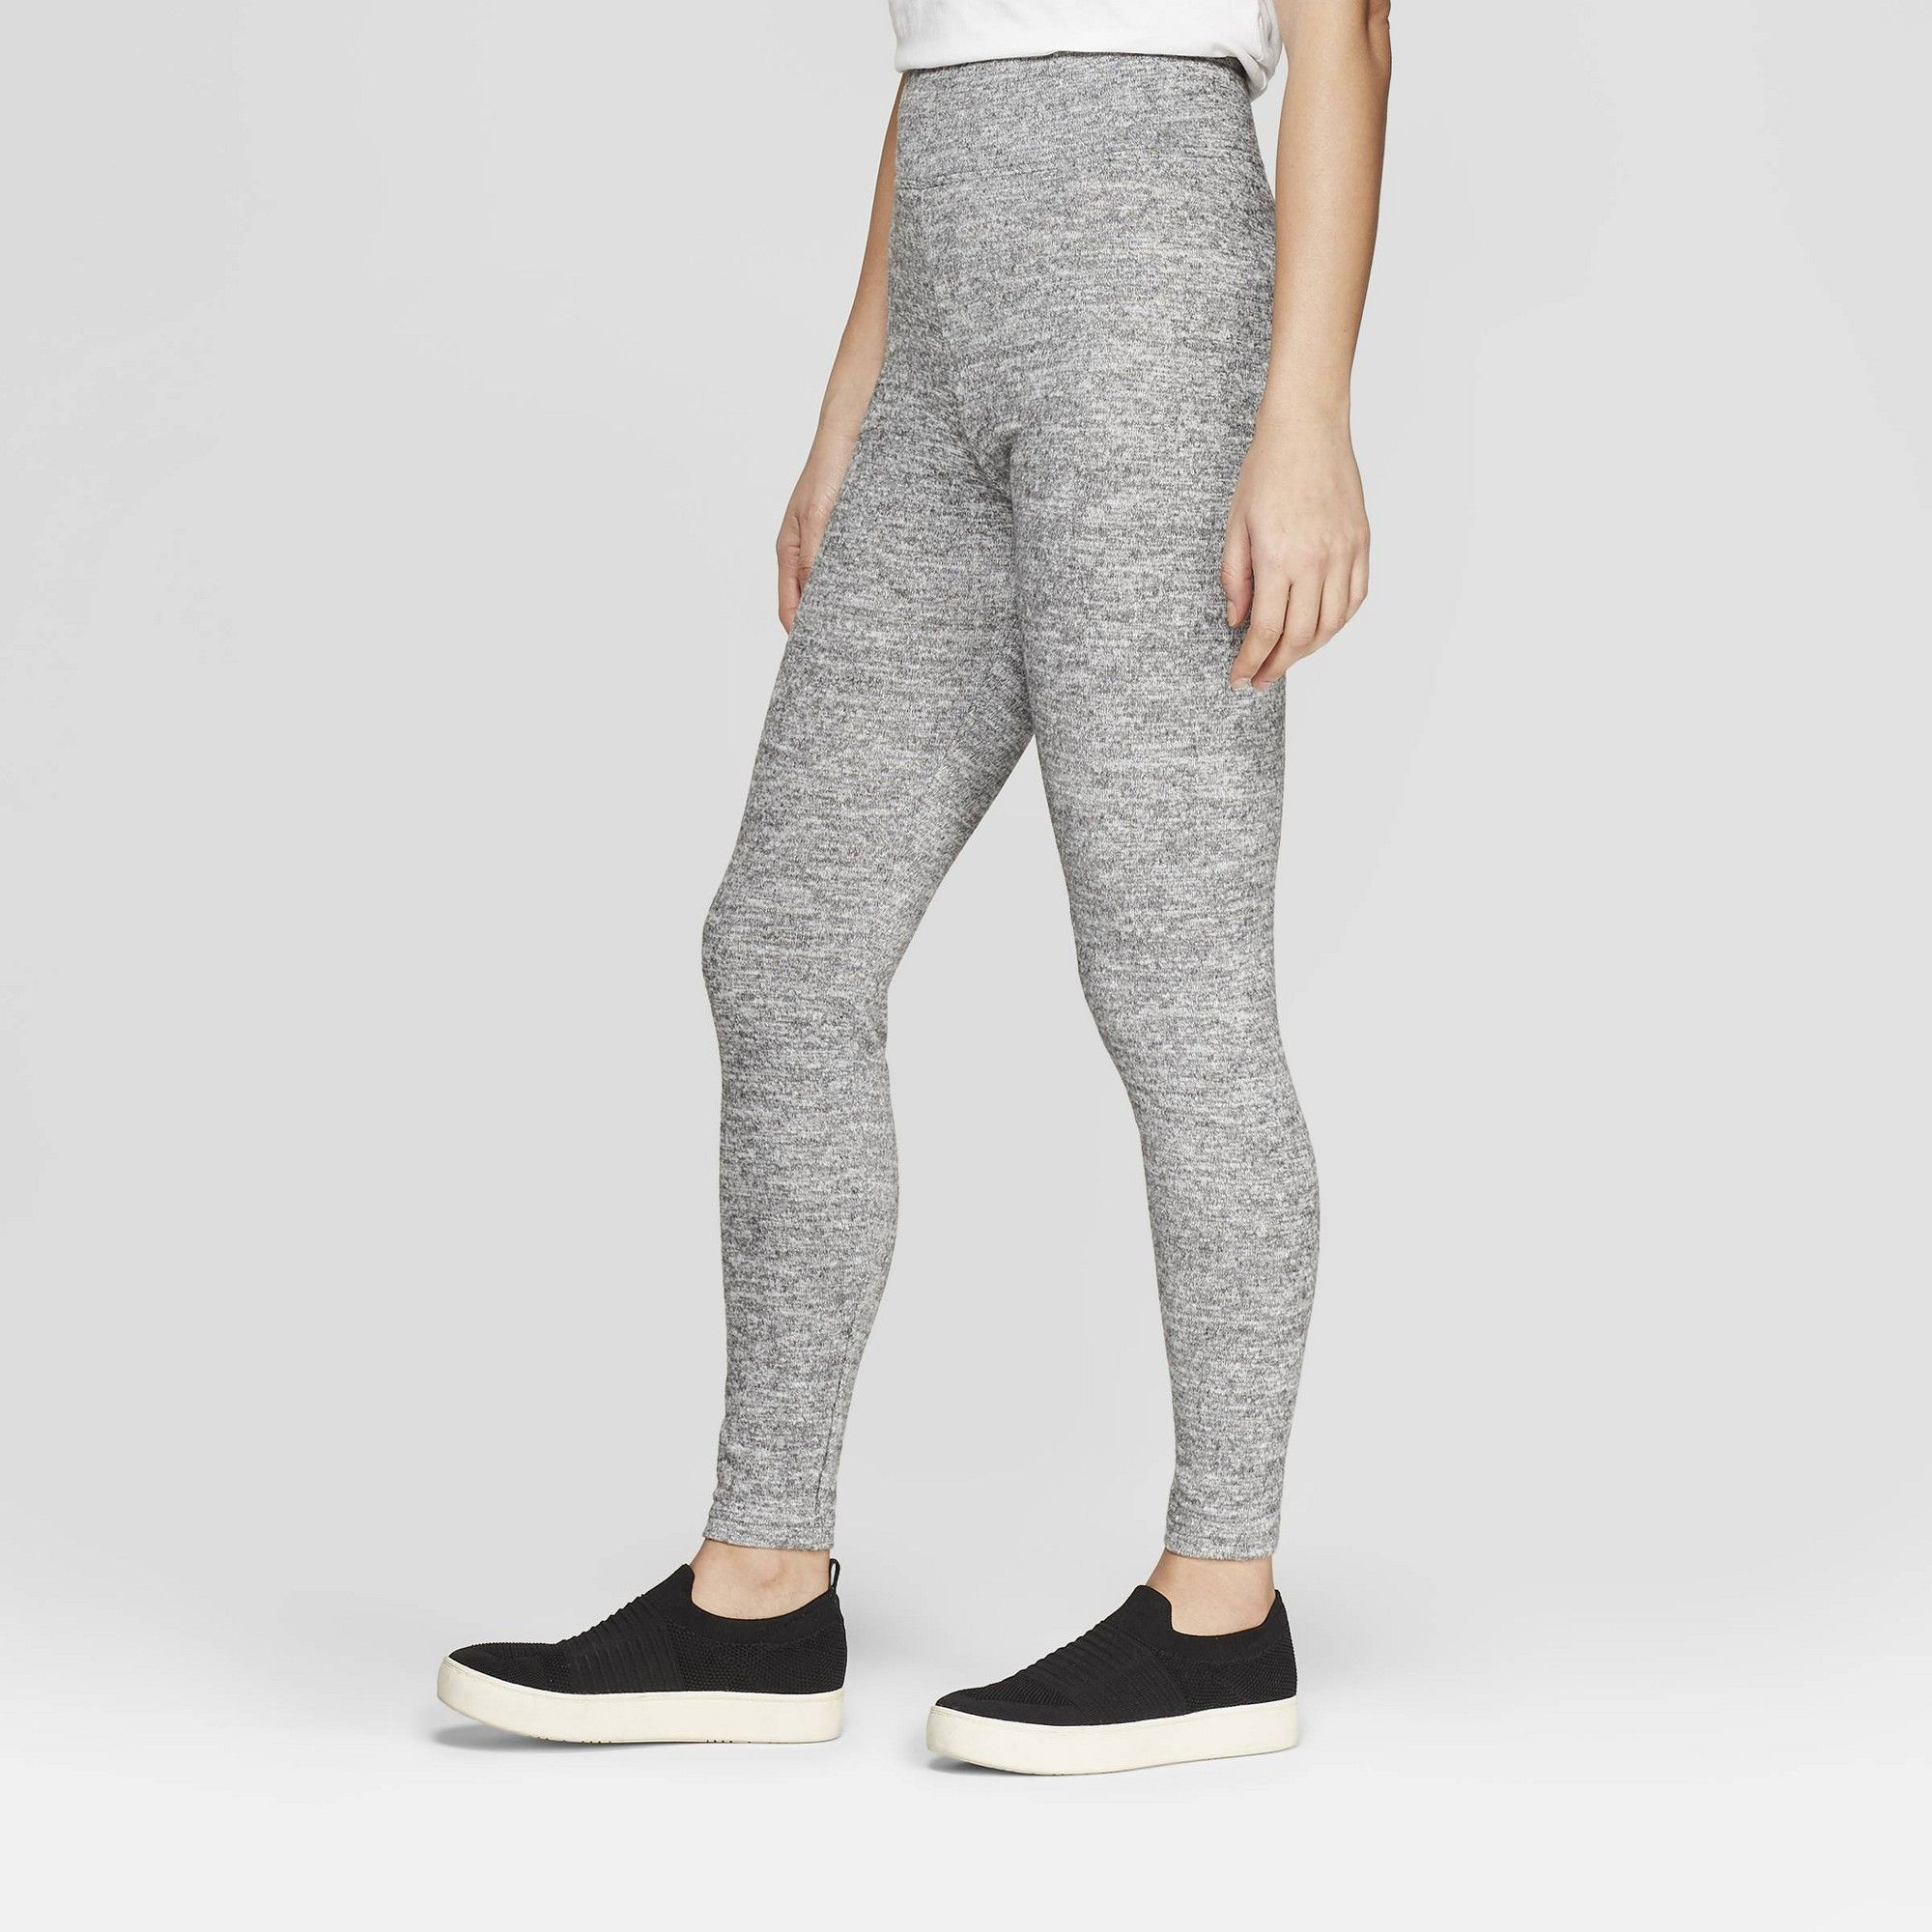 f115992bd8627 Women's Cozy Wide Waistband Leggings - A New Day Heather Gray XL in ...